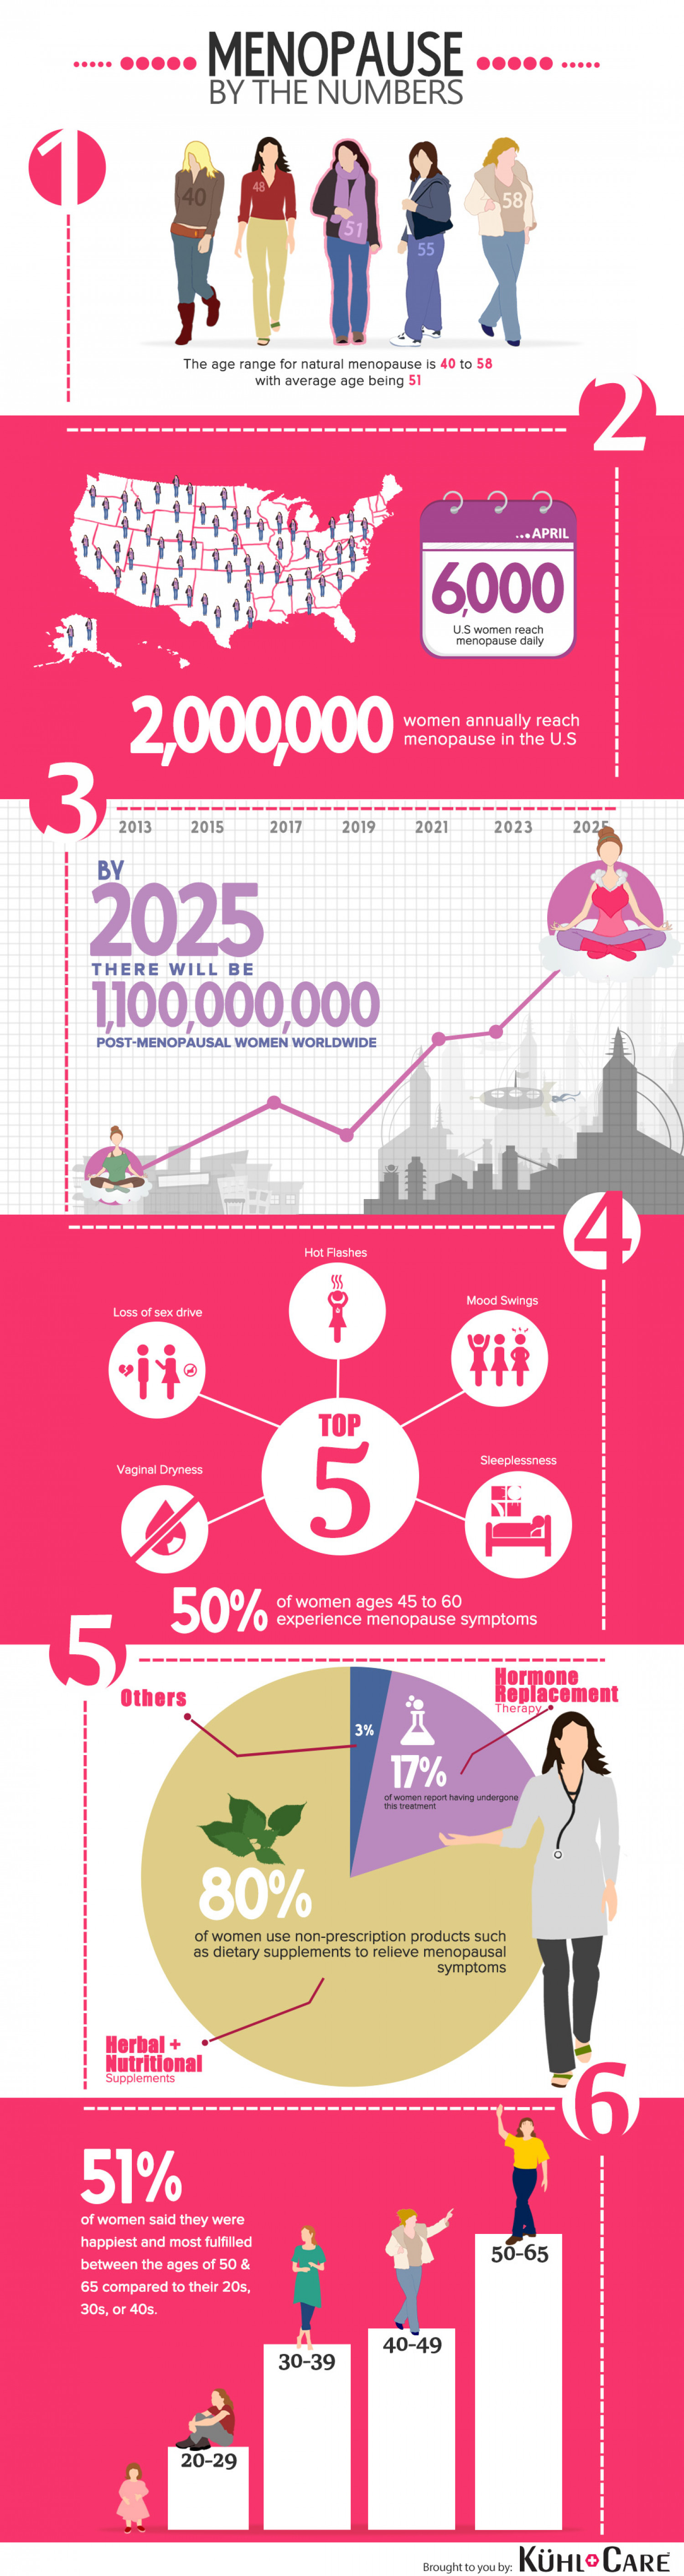 Menopause By The Numbers Infographic